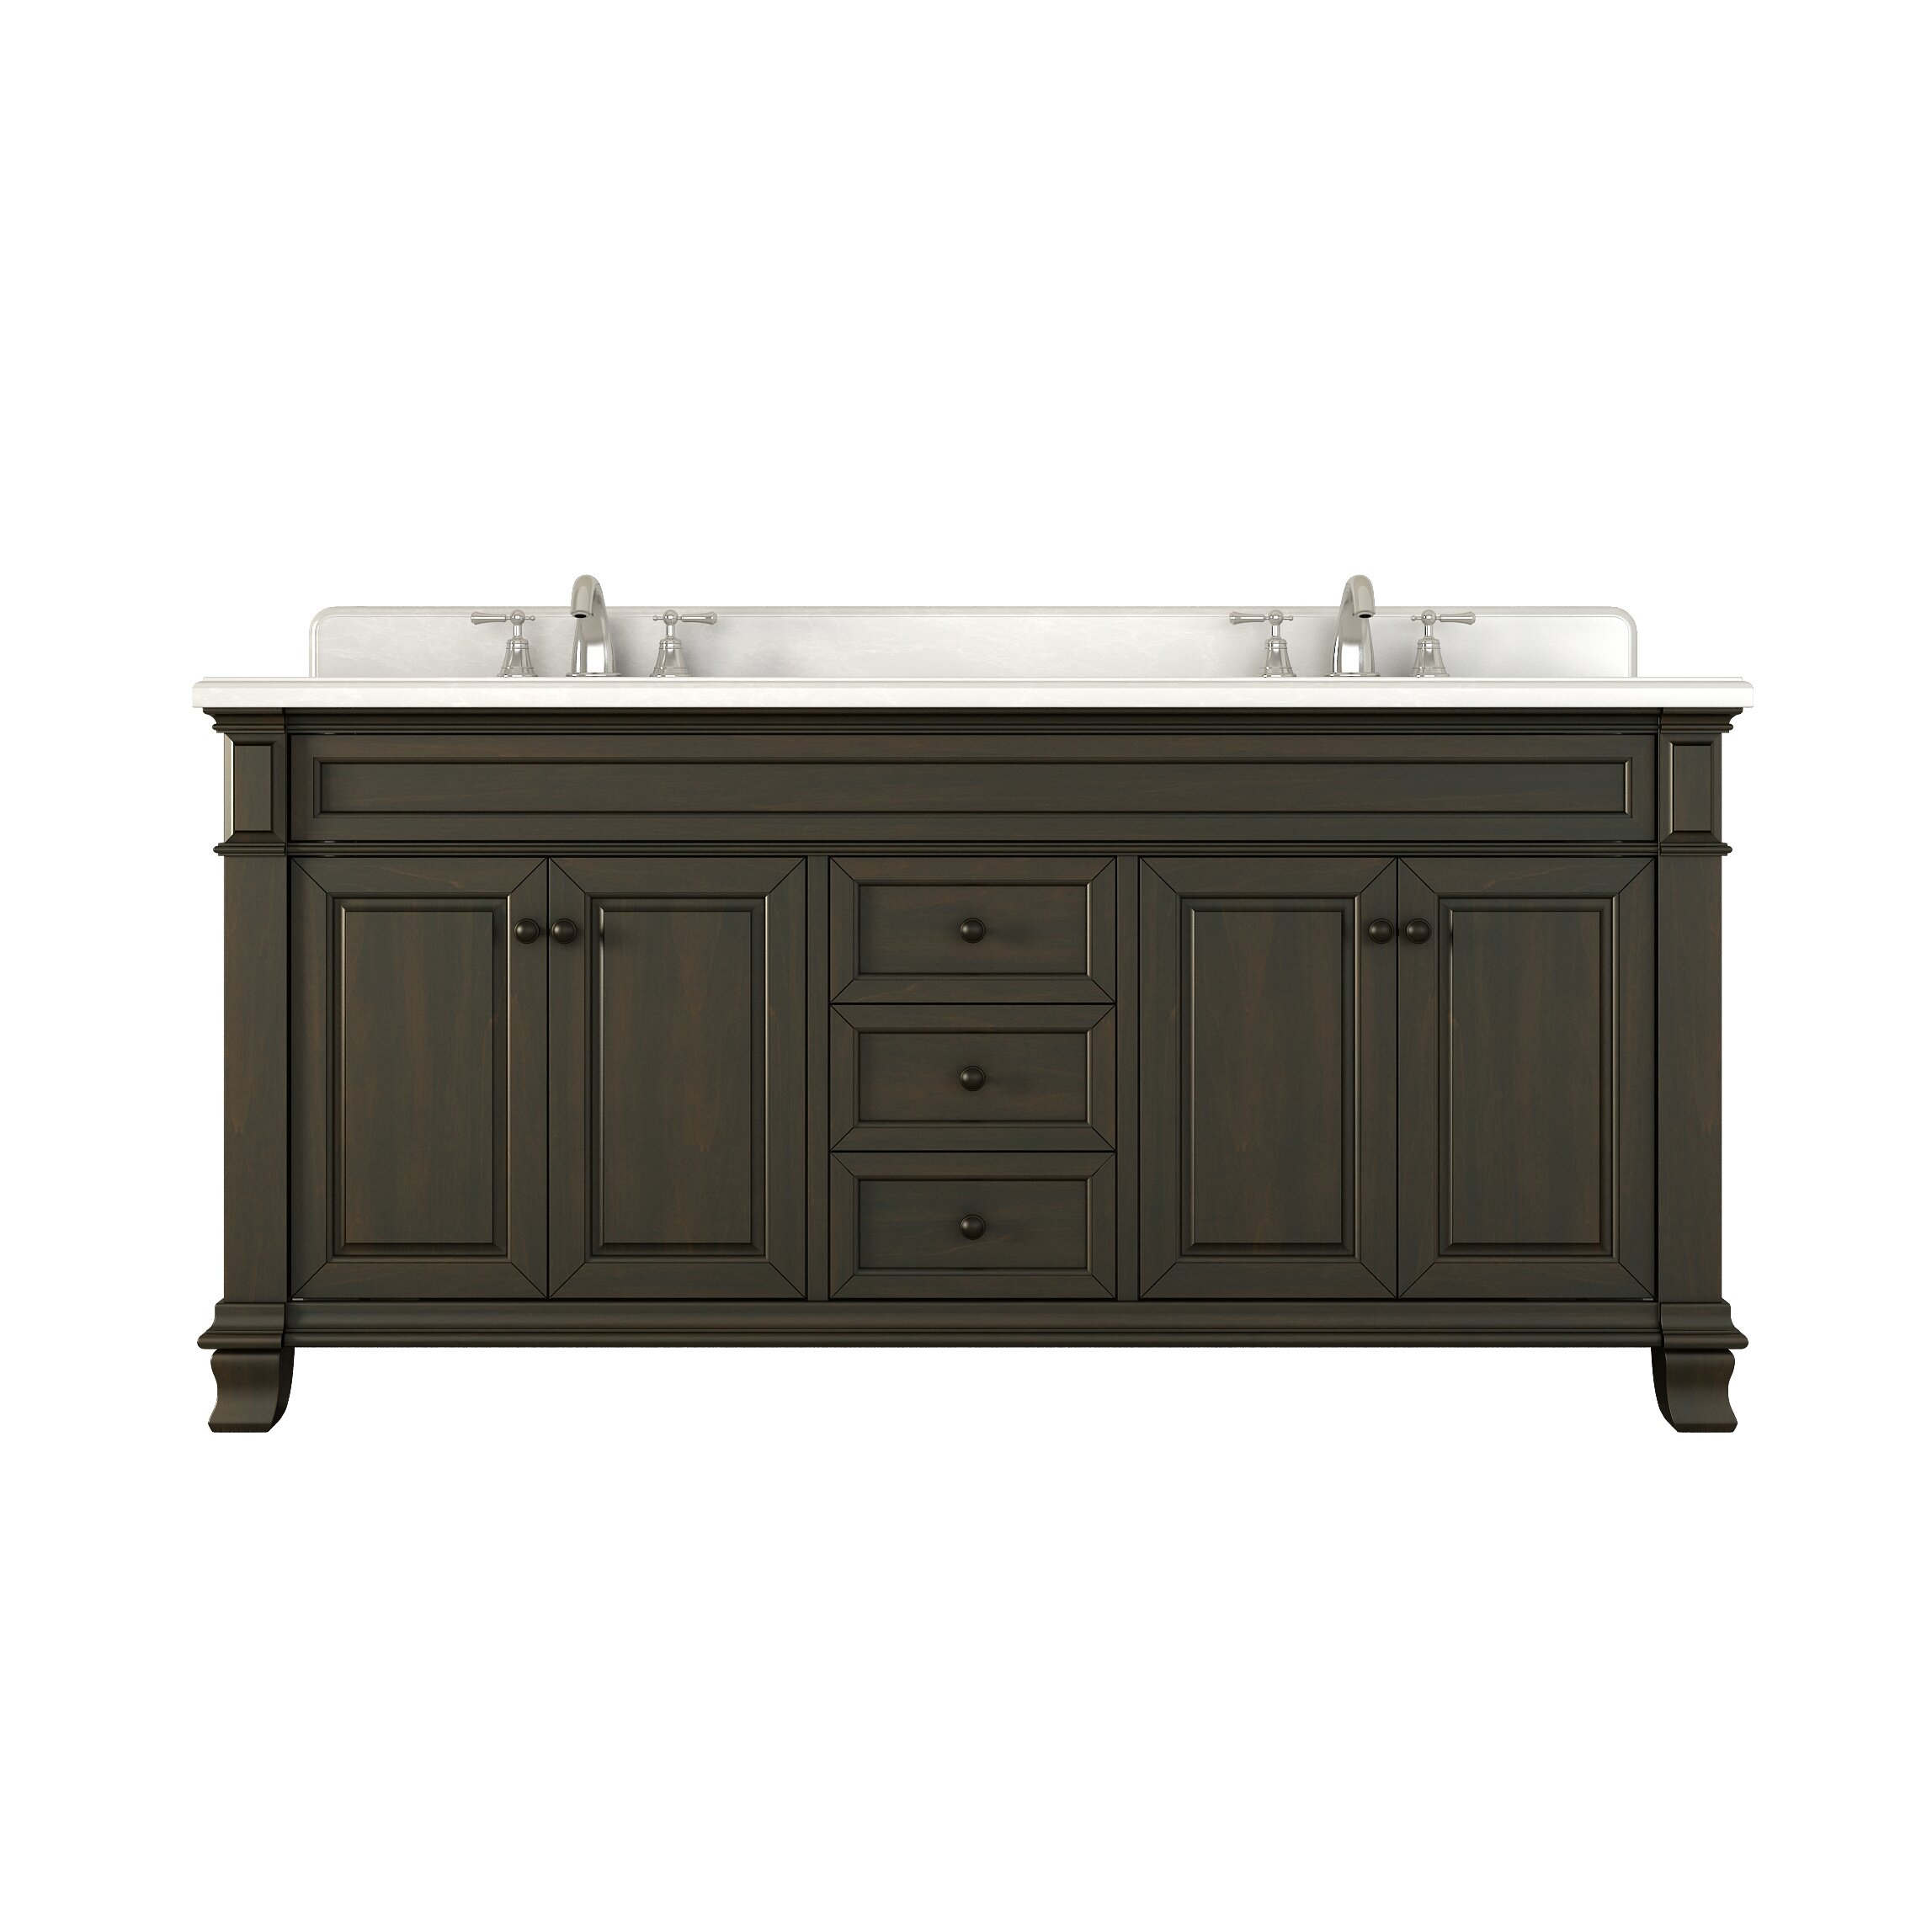 Lanza kingsley 72 double bathroom vanity set reviews for Bathroom 72 double vanity